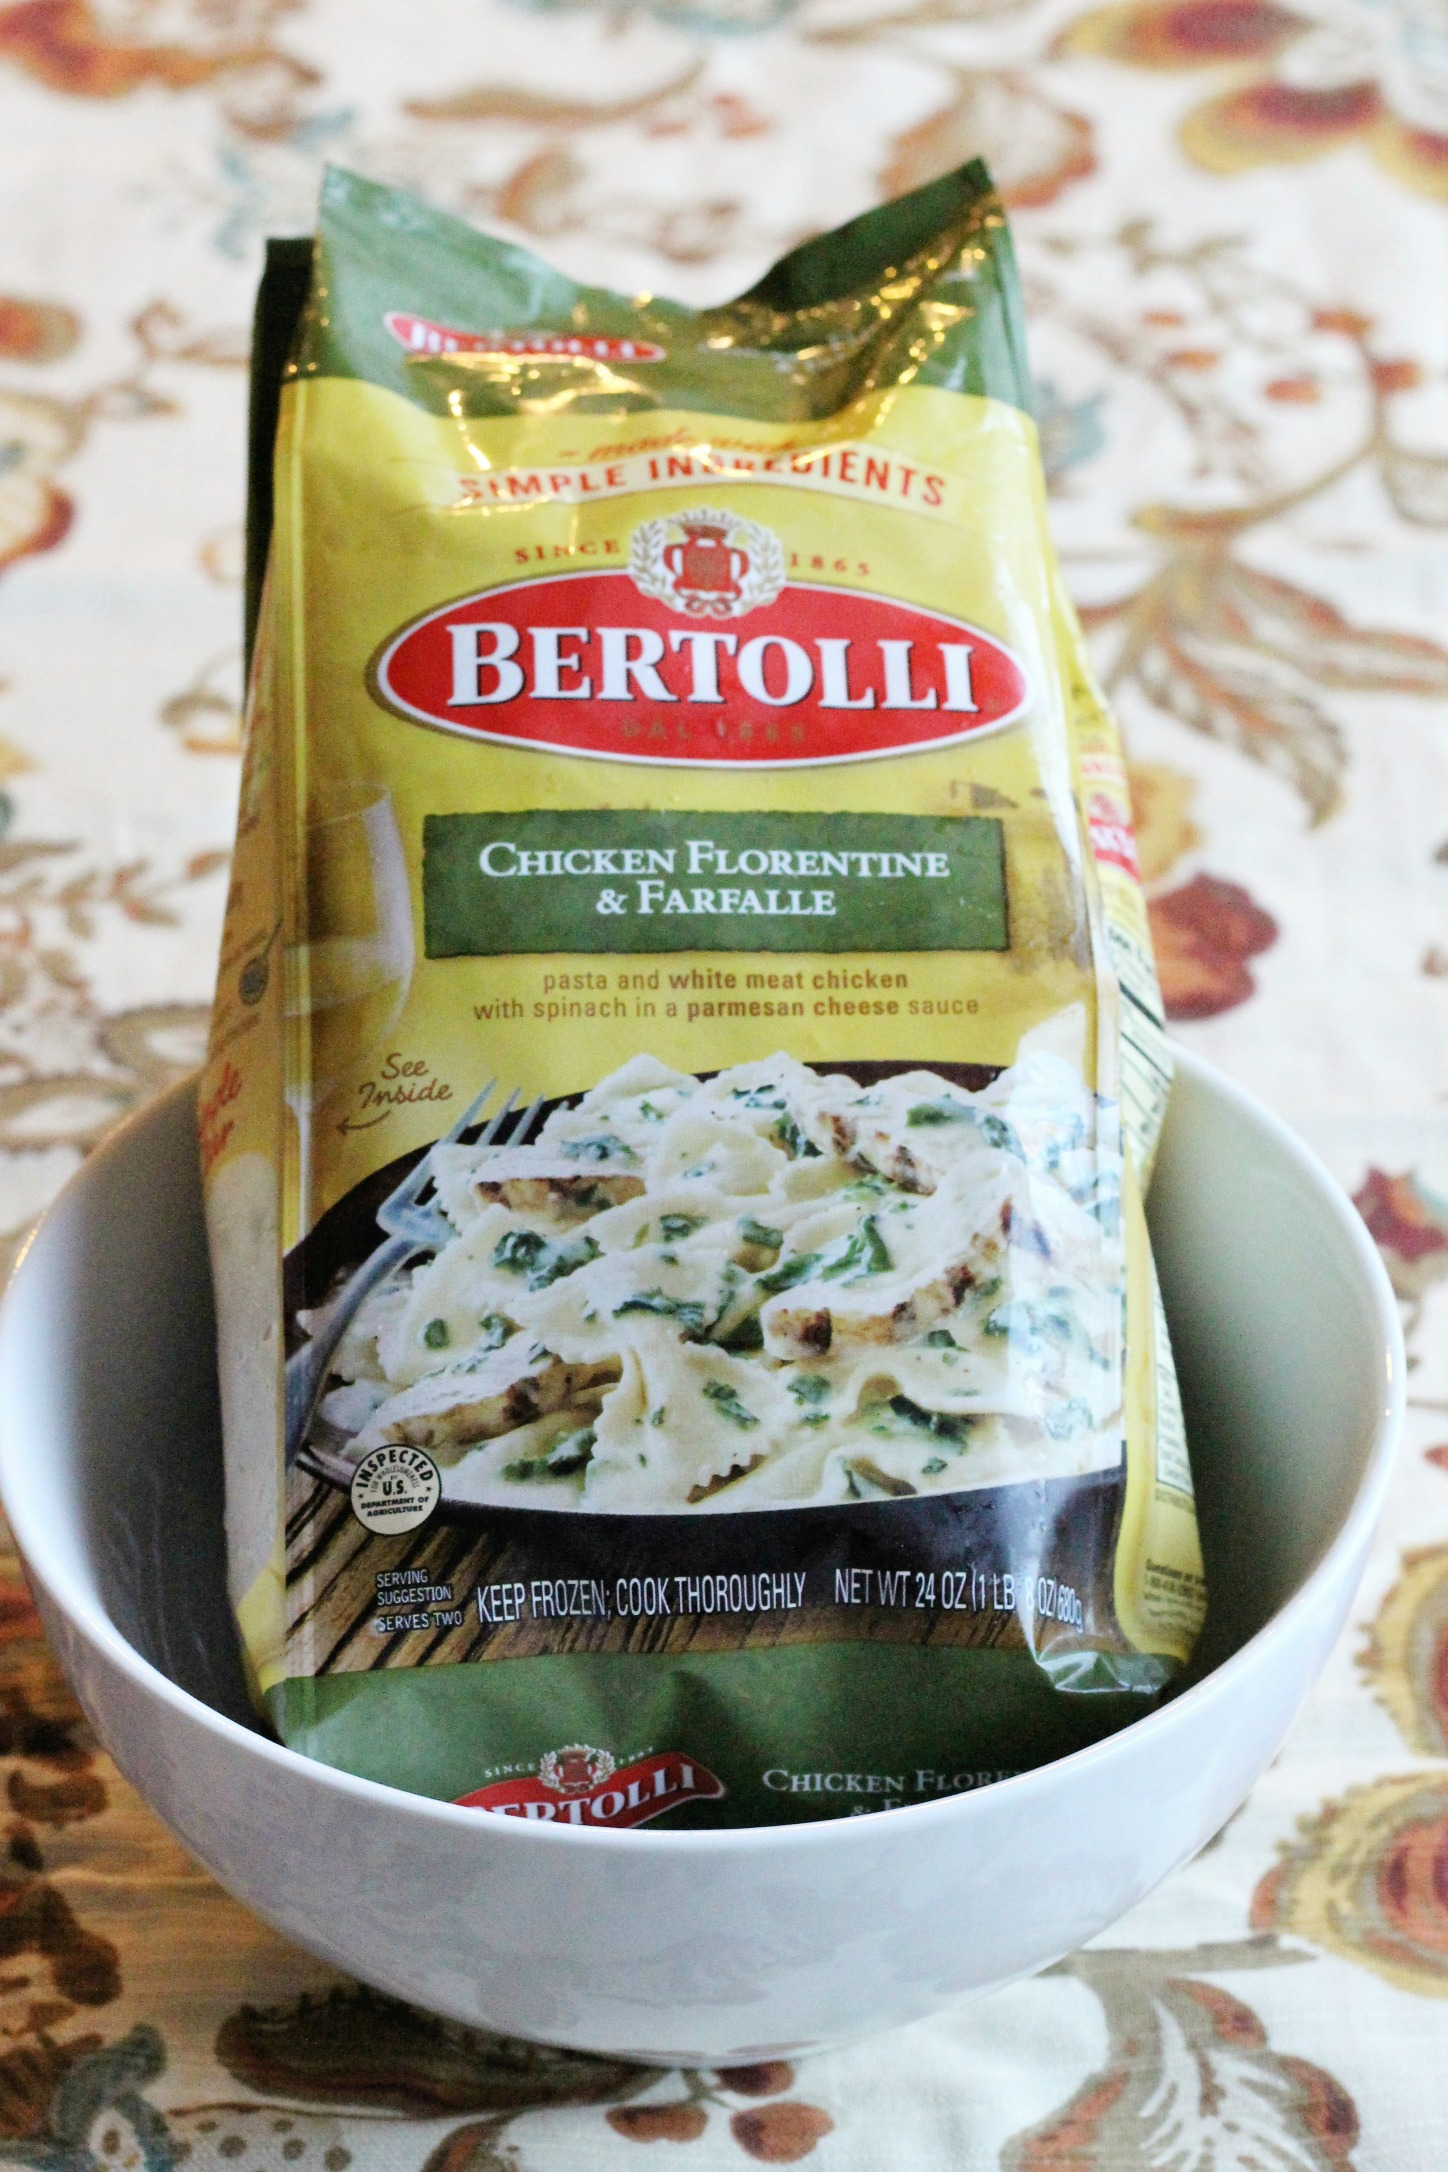 Italian Style Family Meals with Bertolli